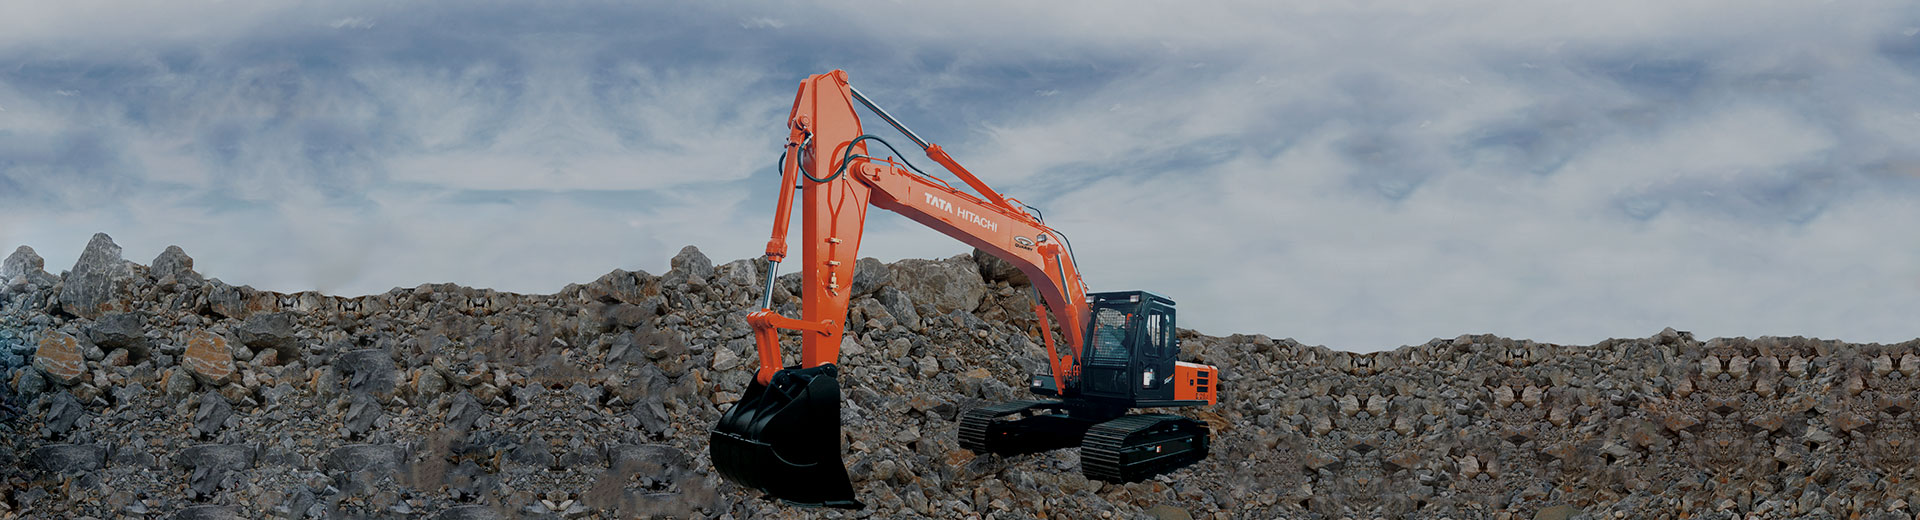 EX 215LC Quarry Construction Excavators